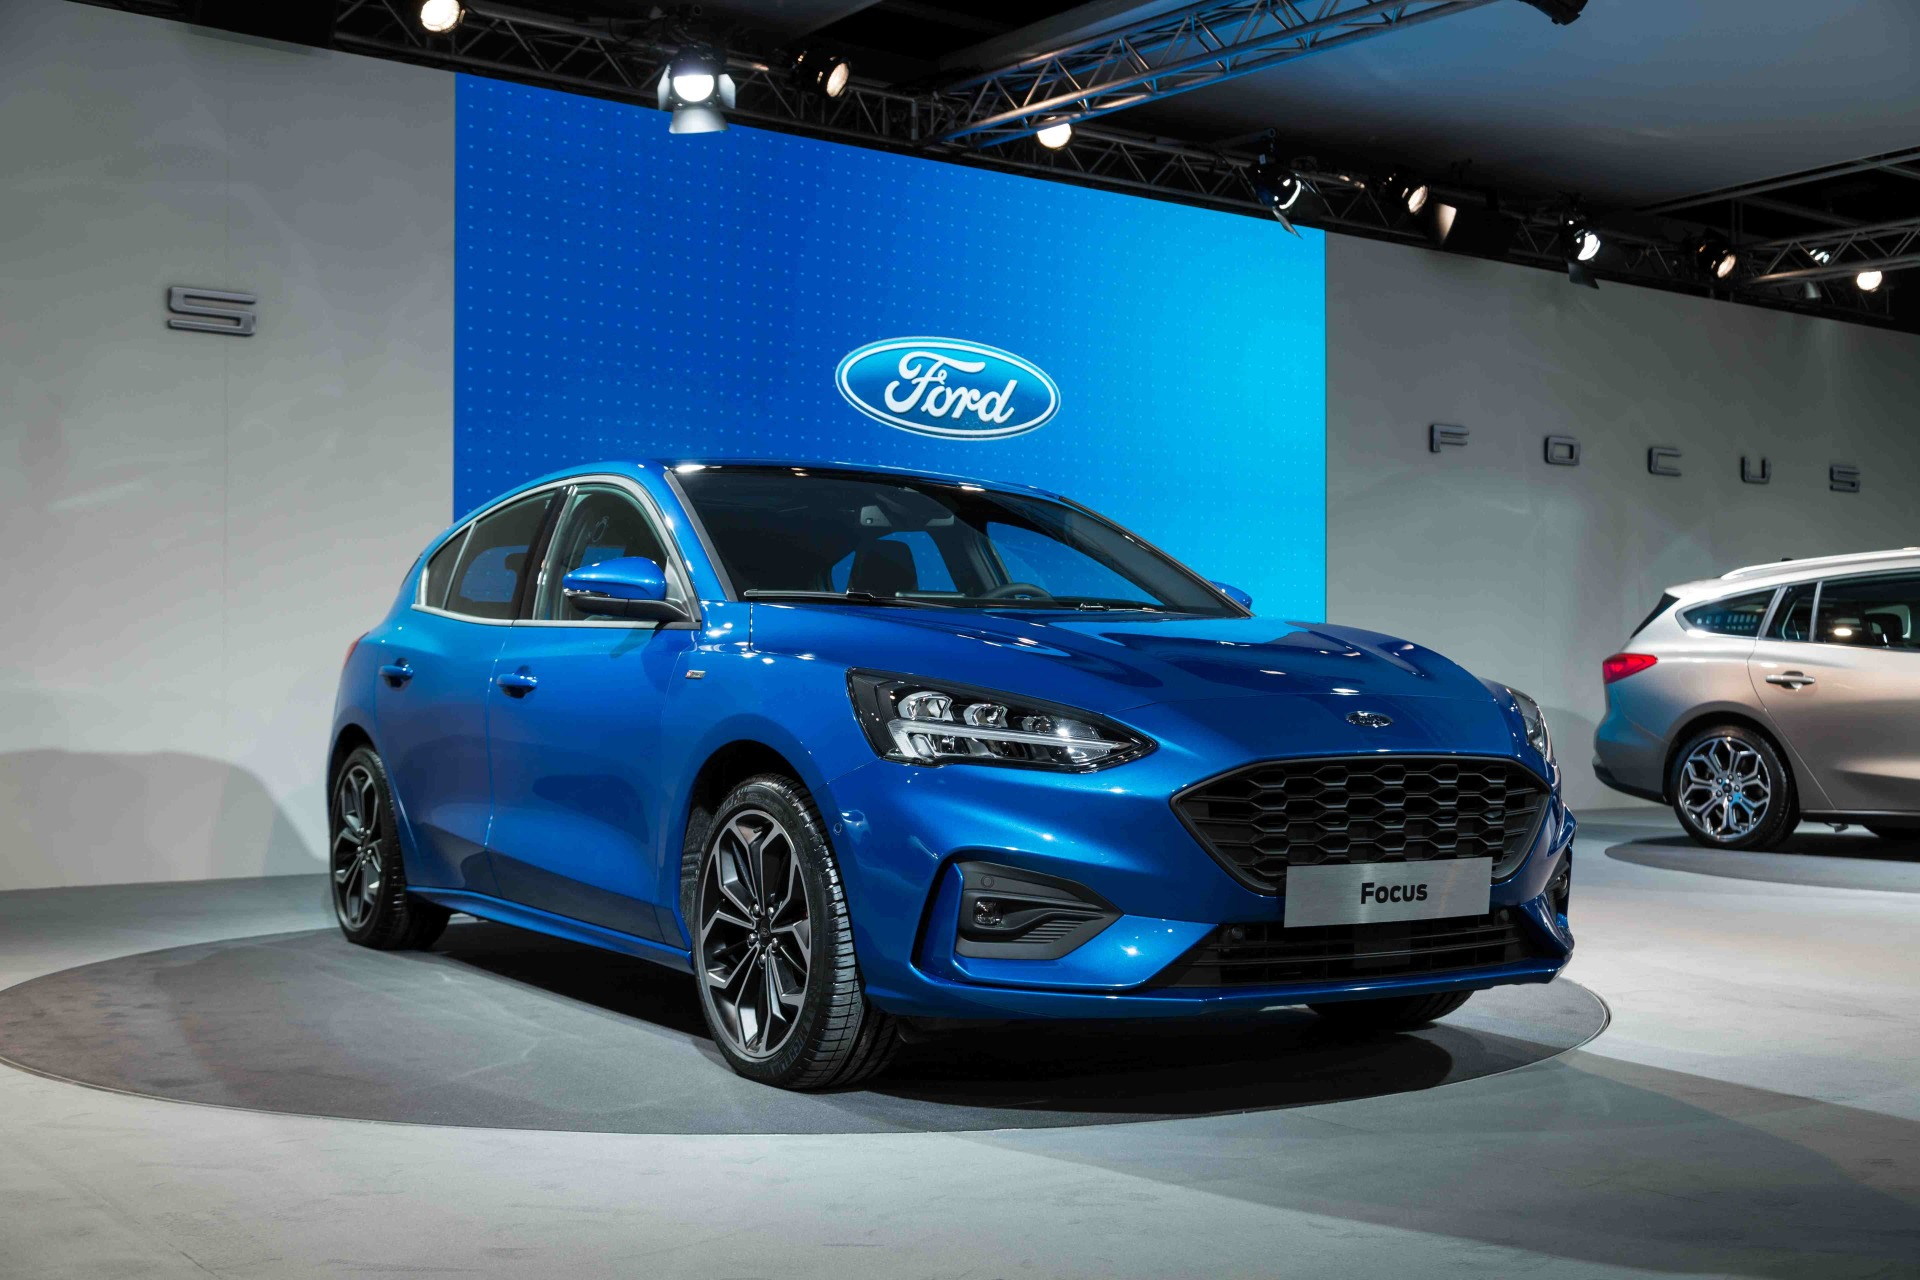 ford focus 4 2018 la nouvelle focus enfin d voil e photo 1 l 39 argus. Black Bedroom Furniture Sets. Home Design Ideas